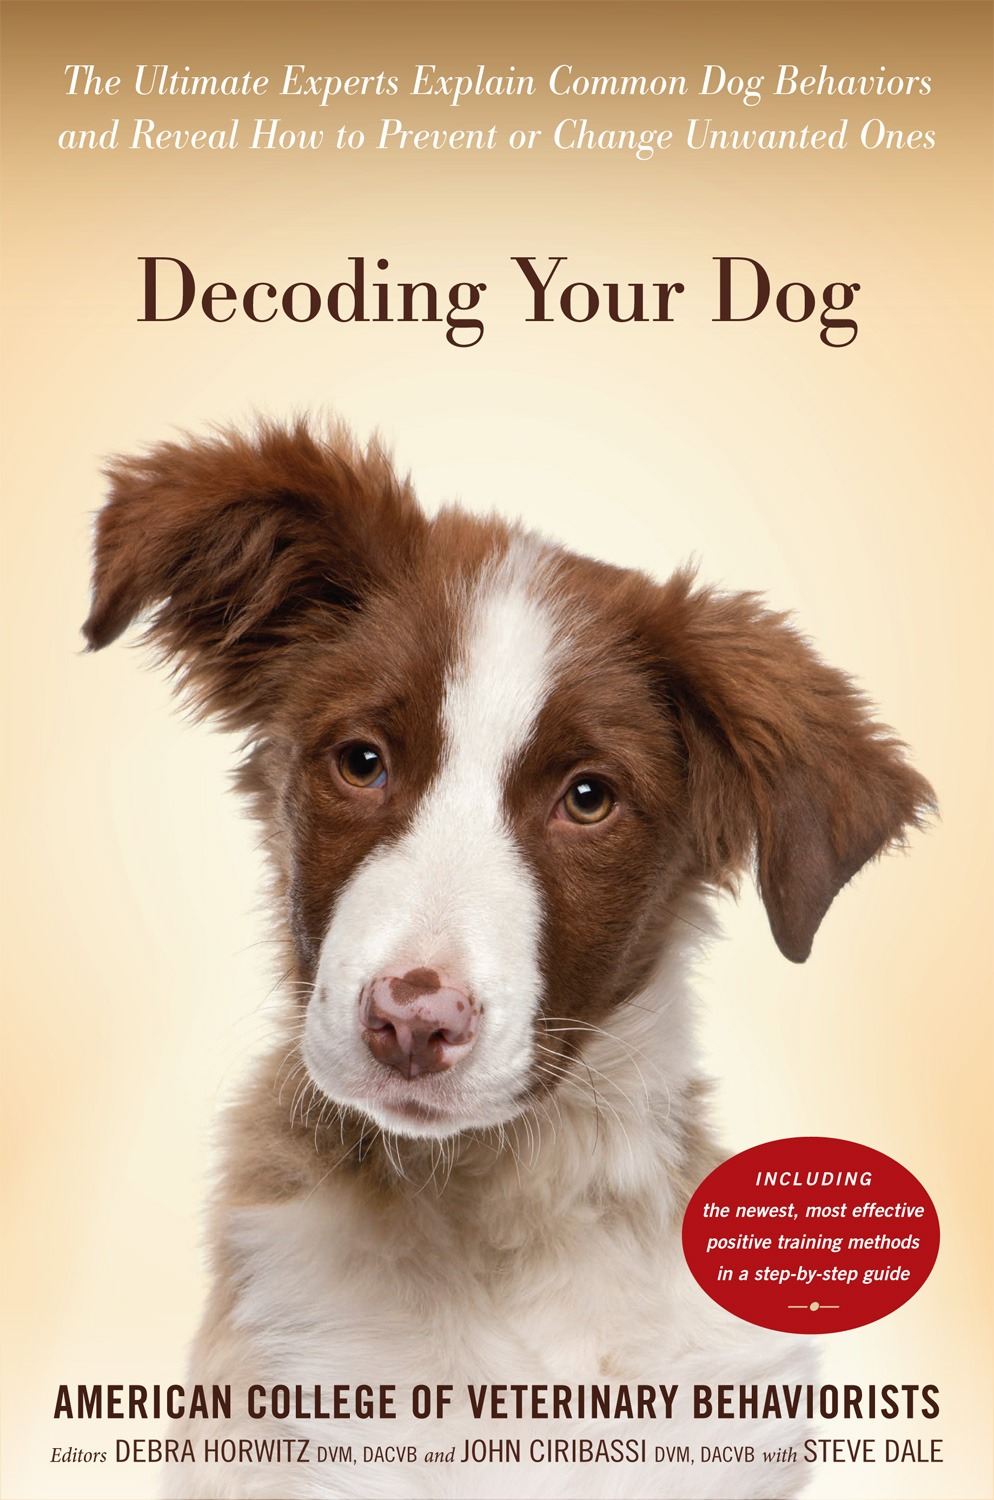 Decoding Your Dog Helps Explain & Change Dog Behaviors #DogDecoding | Optimistic Mommy